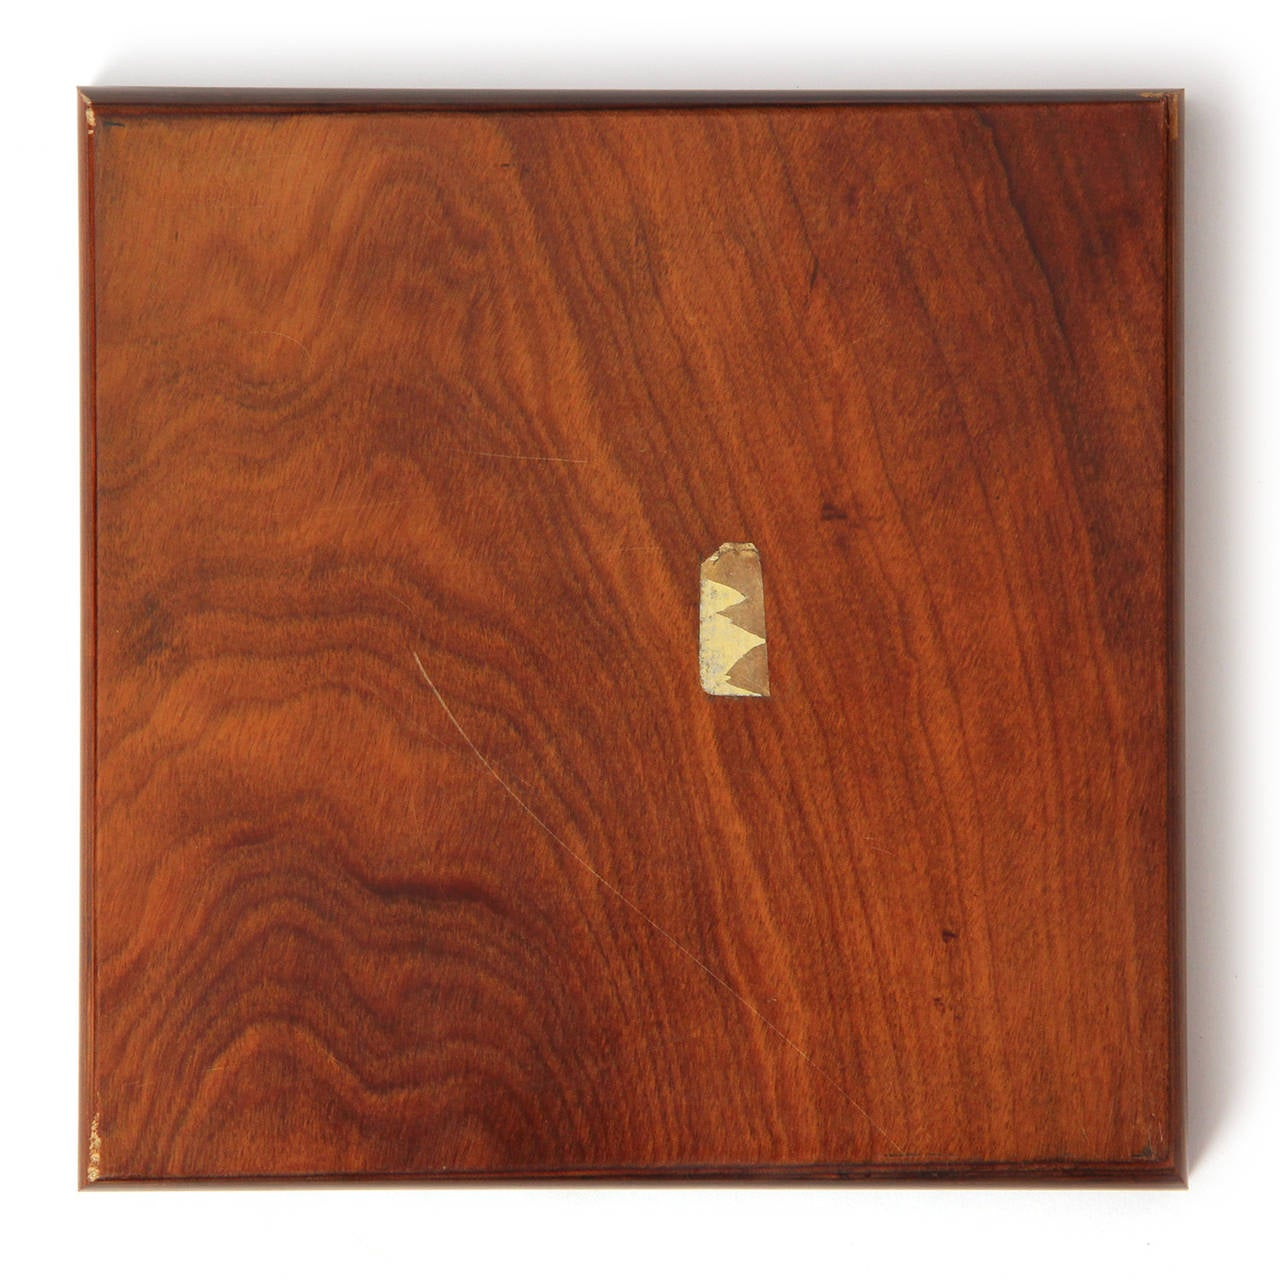 Modernist Ashtray by Shur Wood For Sale 2